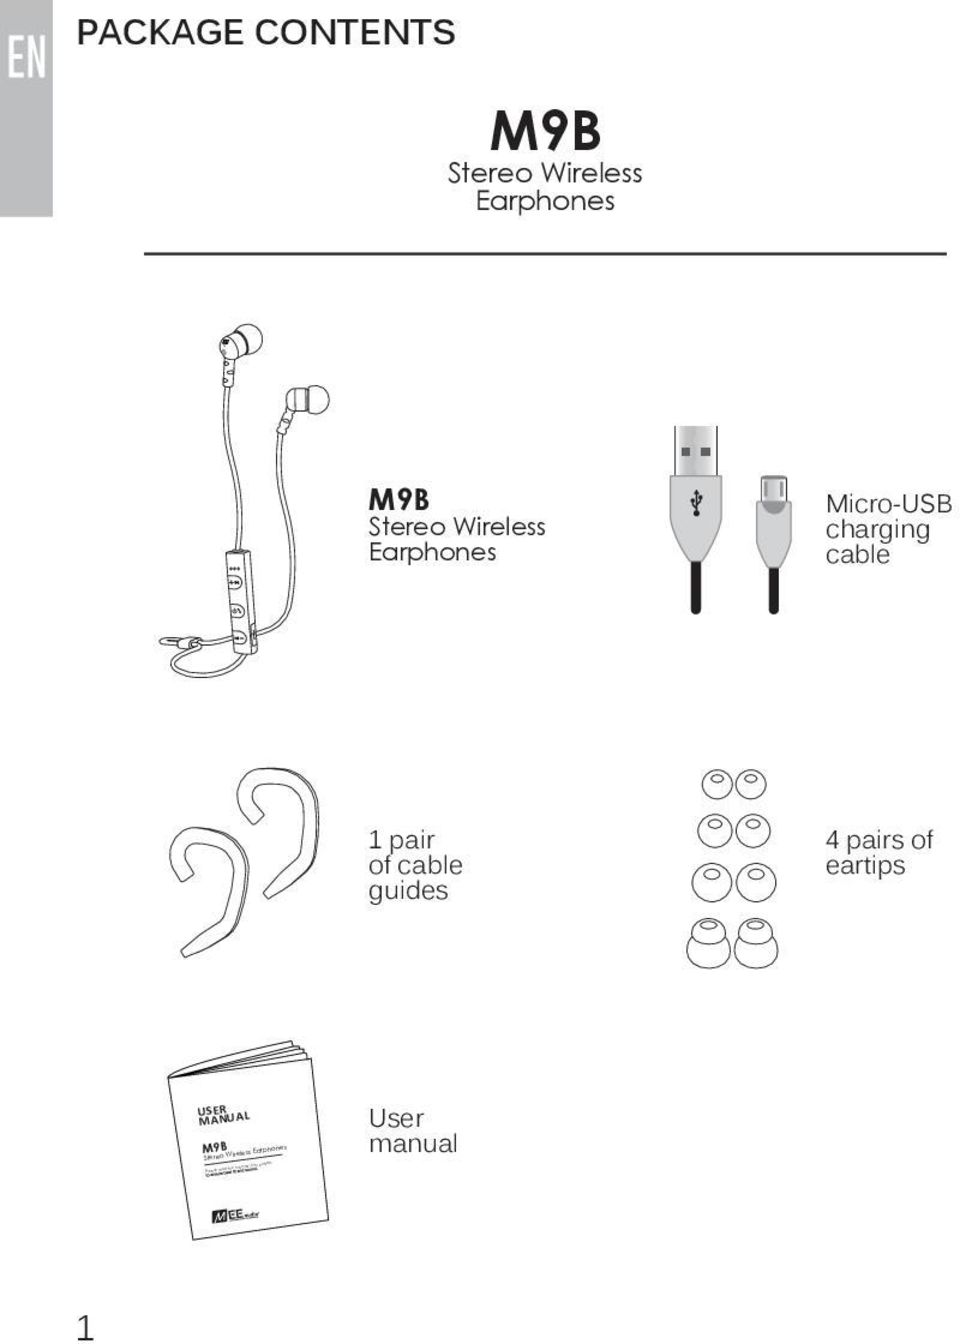 cable guides 4 pairs of eartips USER MANUAL M9B Stereo